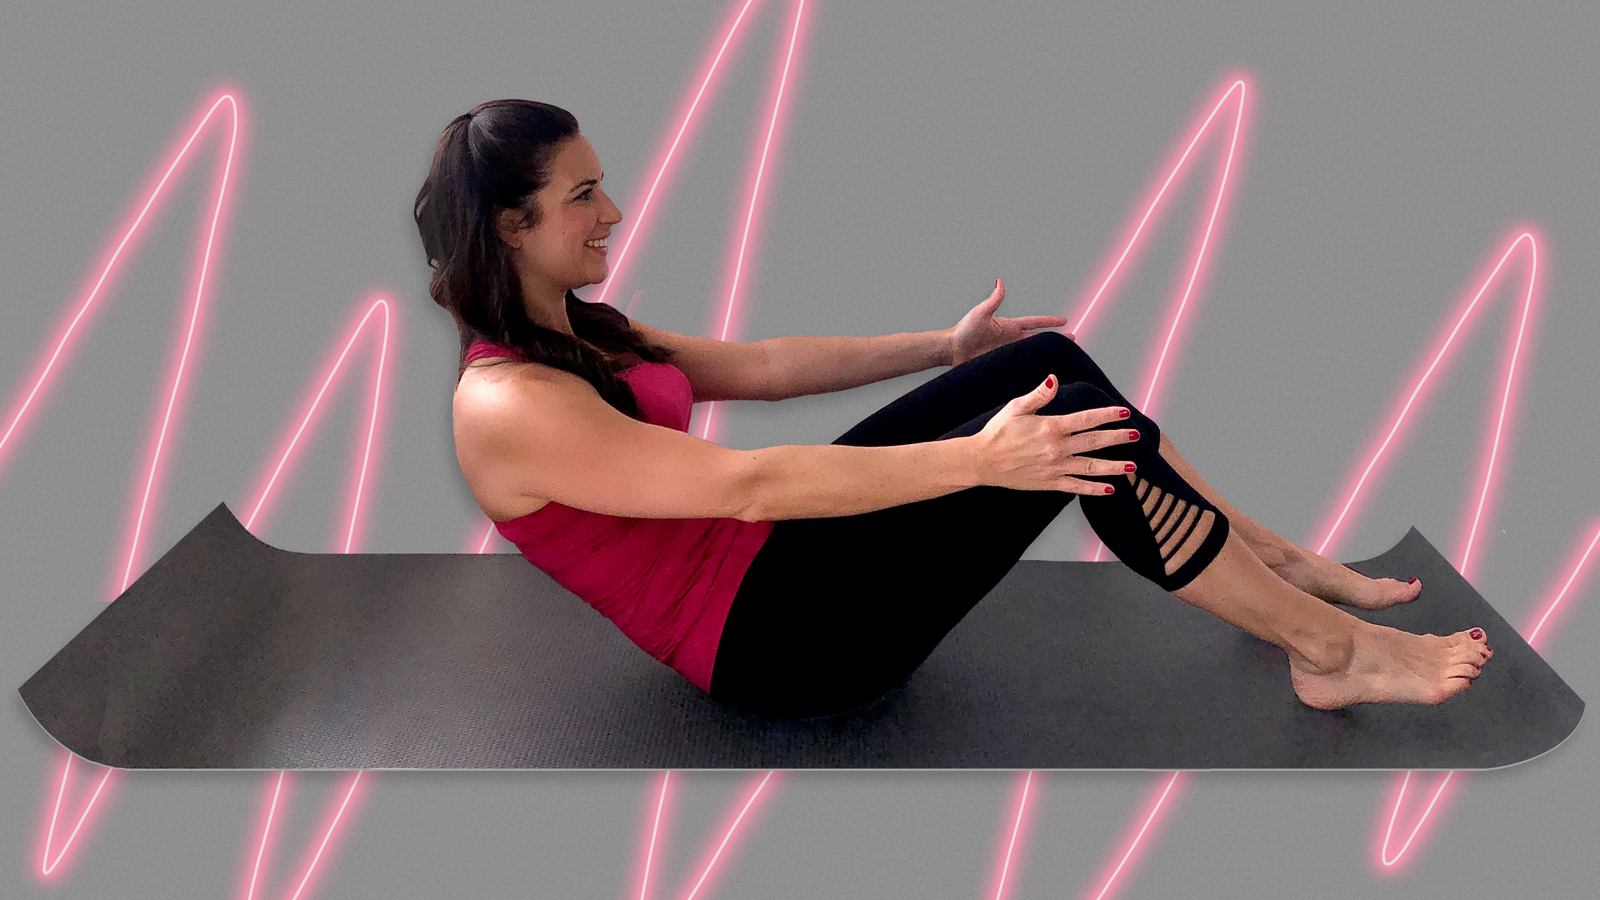 Reduce back pain with this 5-minute home workout